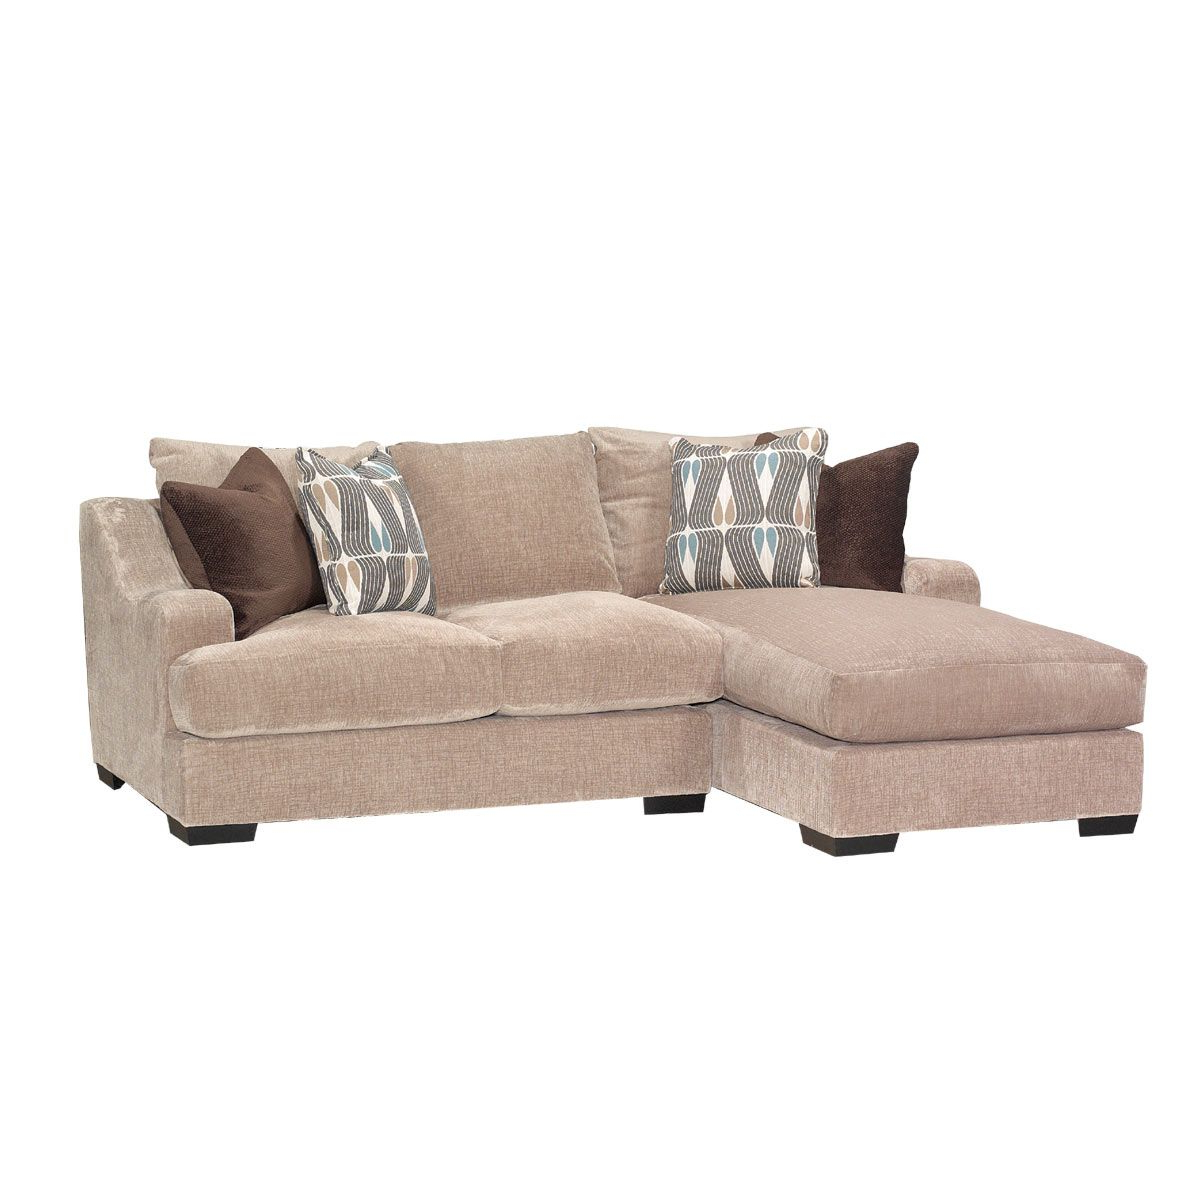 2Pc Maddox Left Arm Facing Sectional Sofas With Chaise Brown For Most Up To Date Stone Brown Casual Contemporary 2 Piece Sectional (View 10 of 25)